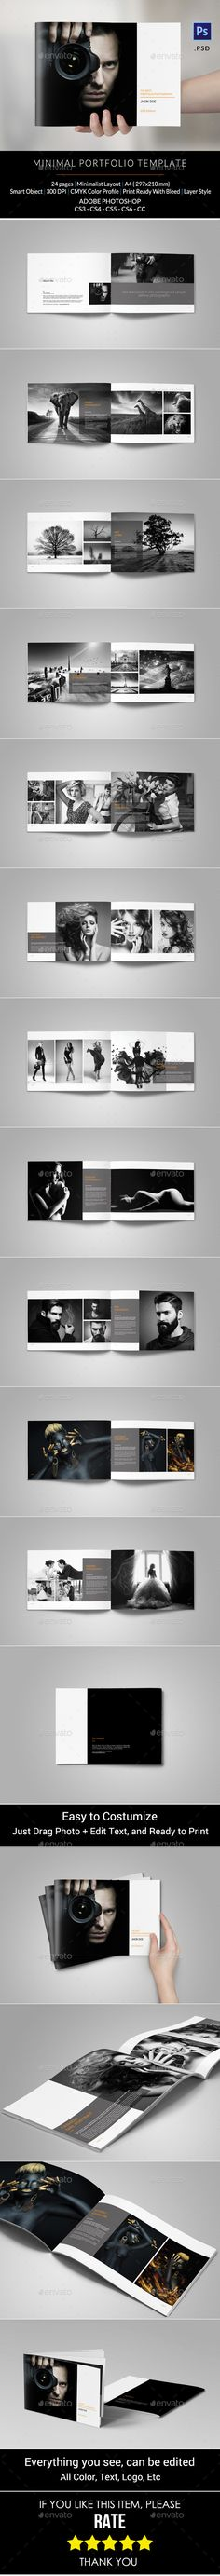 Portfolio Photographer Brochure Template #design Download: http://graphicriver.net/item/portfolio-photographer/12696125?ref=ksioks